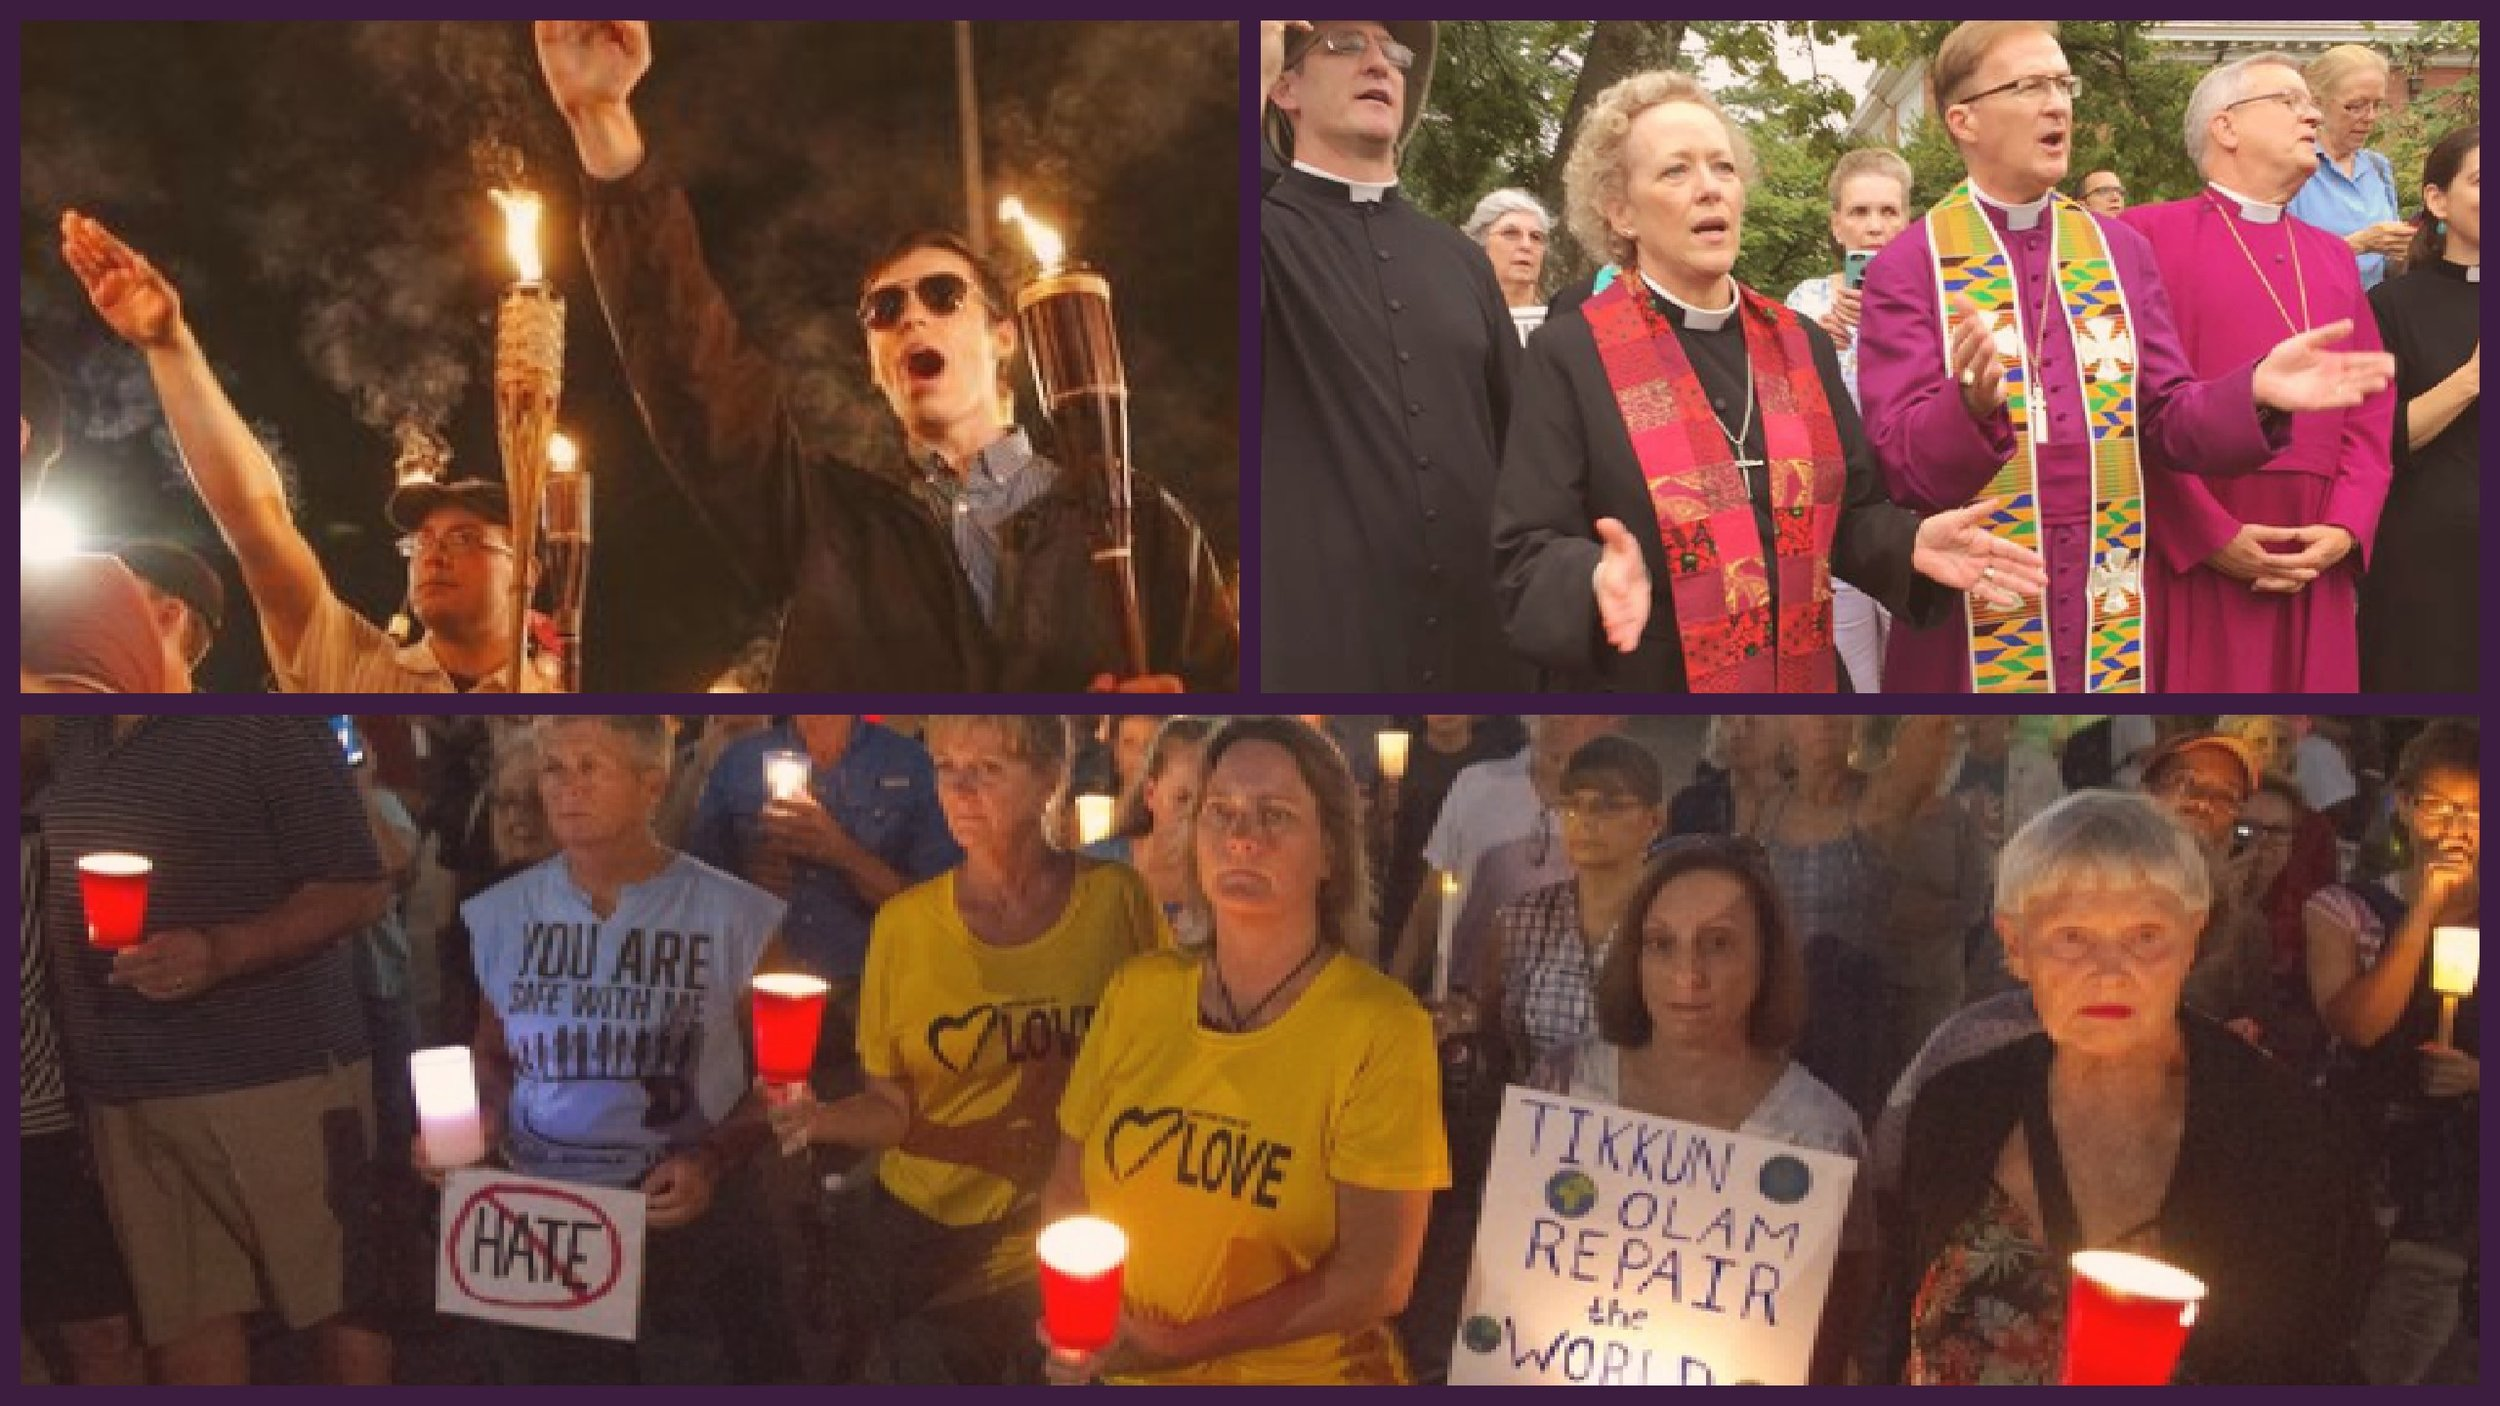 Scenes from Charlottesville, August 1987. Friday night's Rally, the Bishops of Virginia attend Saturday in prayerful counter-protest, Wednesday night's vigil for peace.